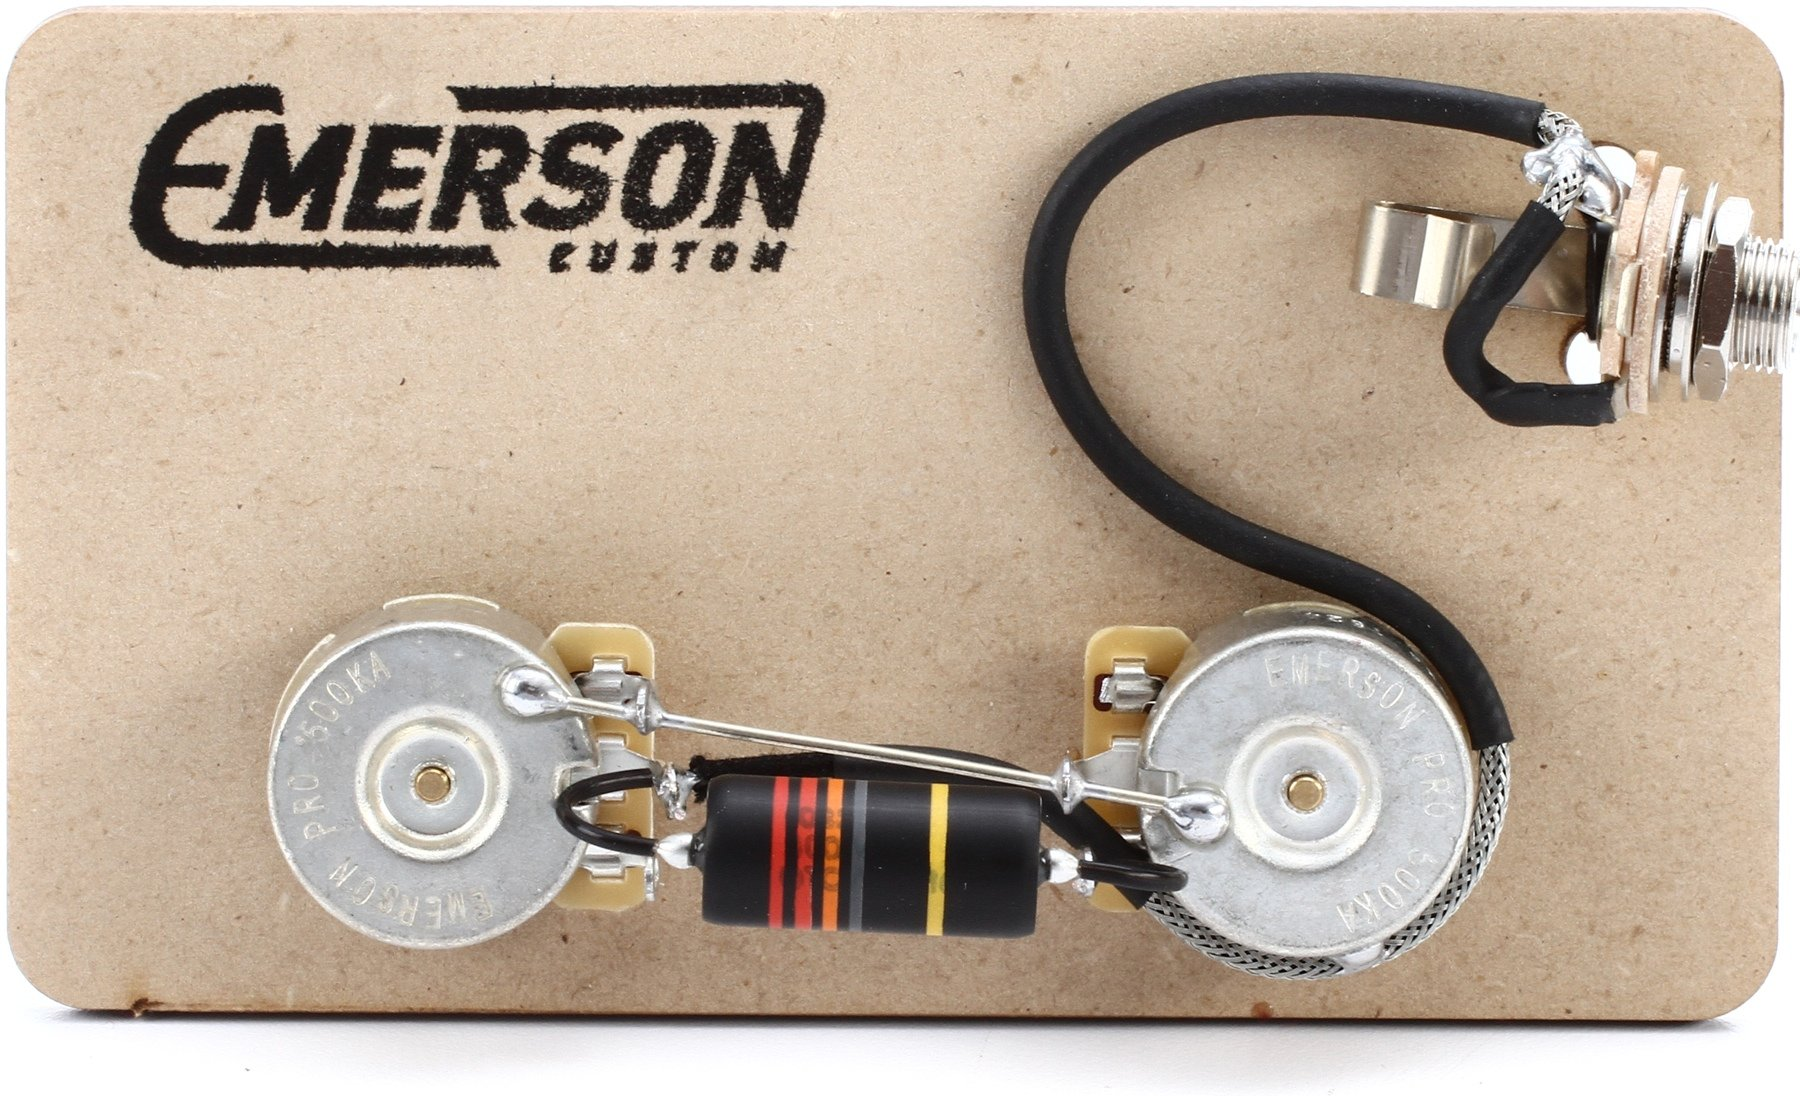 Emerson Custom Prewired Kit For Gibson Les Paul Junior Sweetwater 4 Wire Wiring Diagram Pickups Image 1